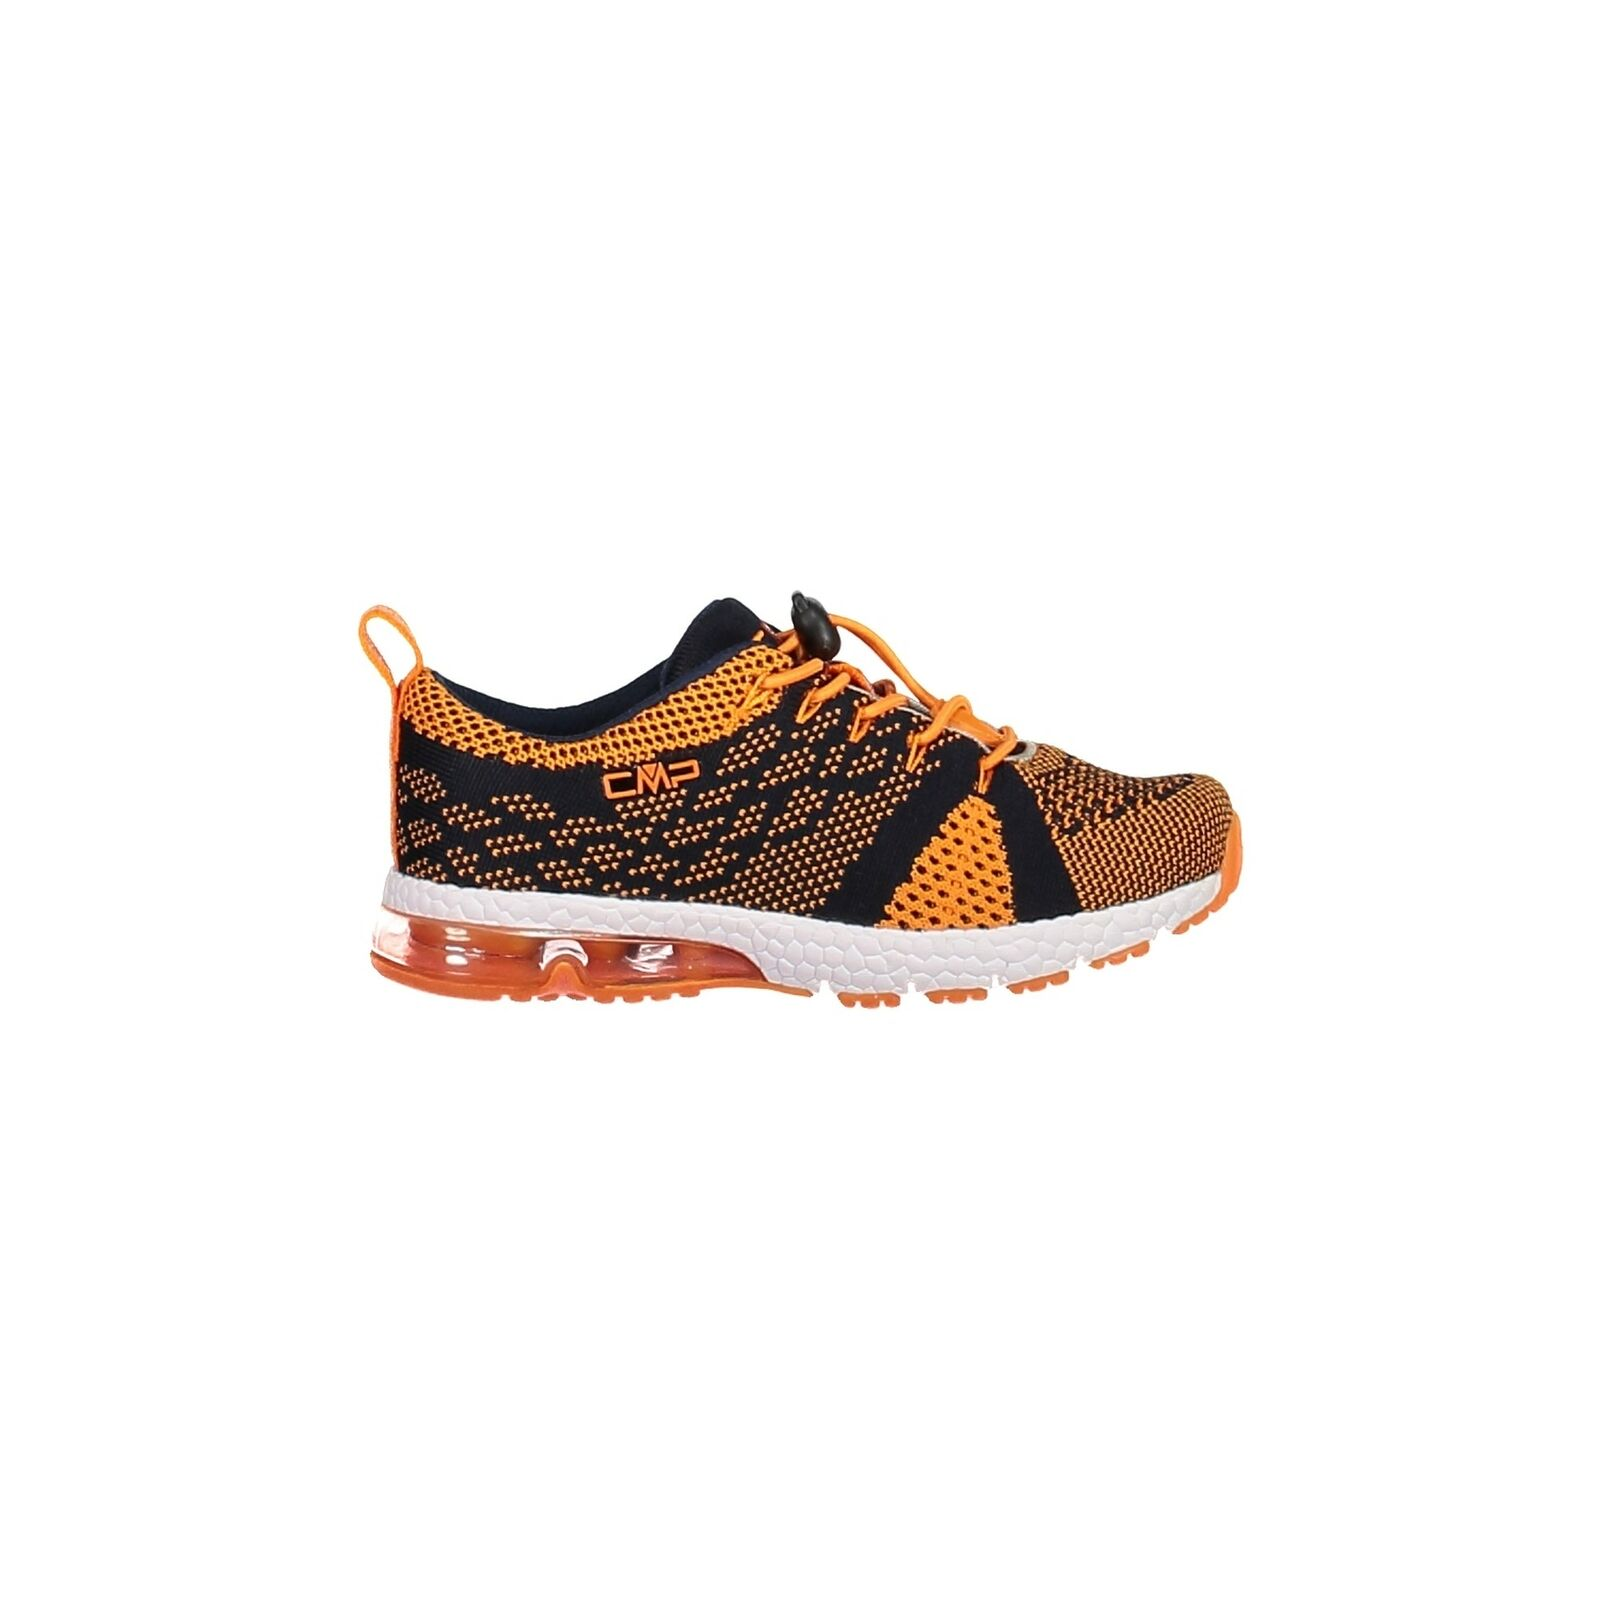 CMP  Trainers Sports Kids Knit Fitness shoes orange Breathable Lightweight  new listing